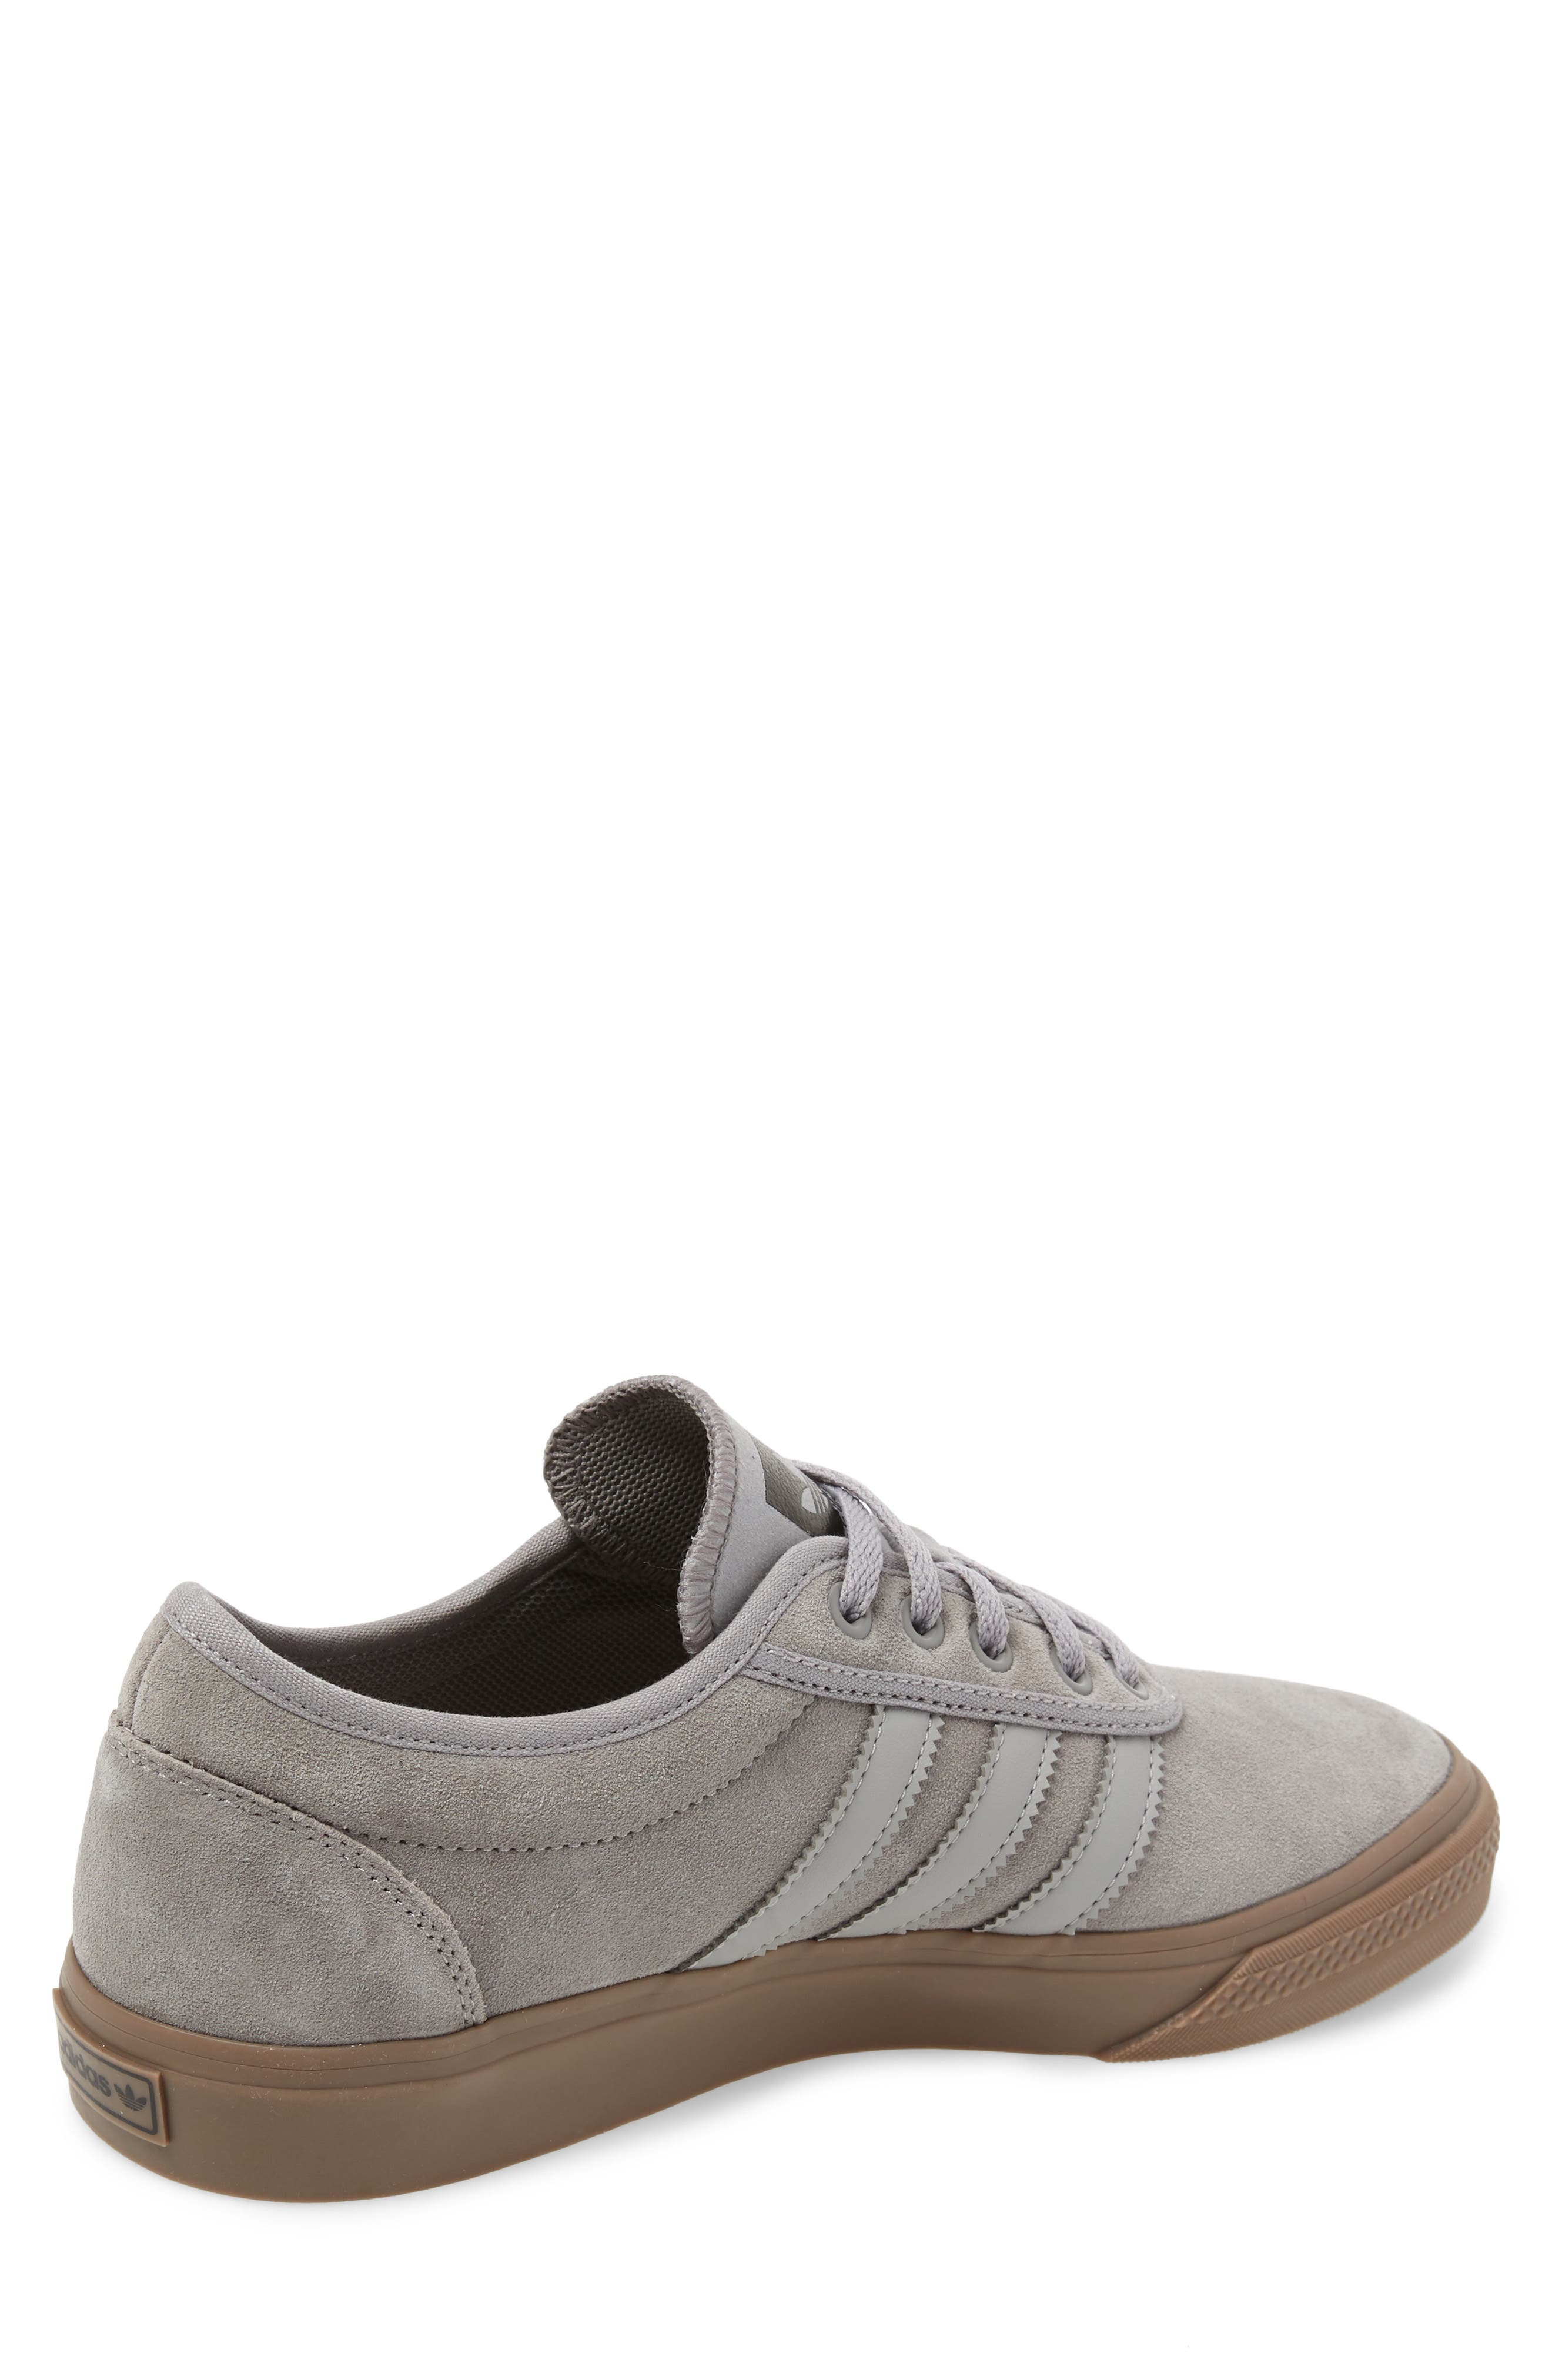 Adiease Skate Sneaker,                             Alternate thumbnail 2, color,                             SOLID GREY/ SOLID GREY/ GUM